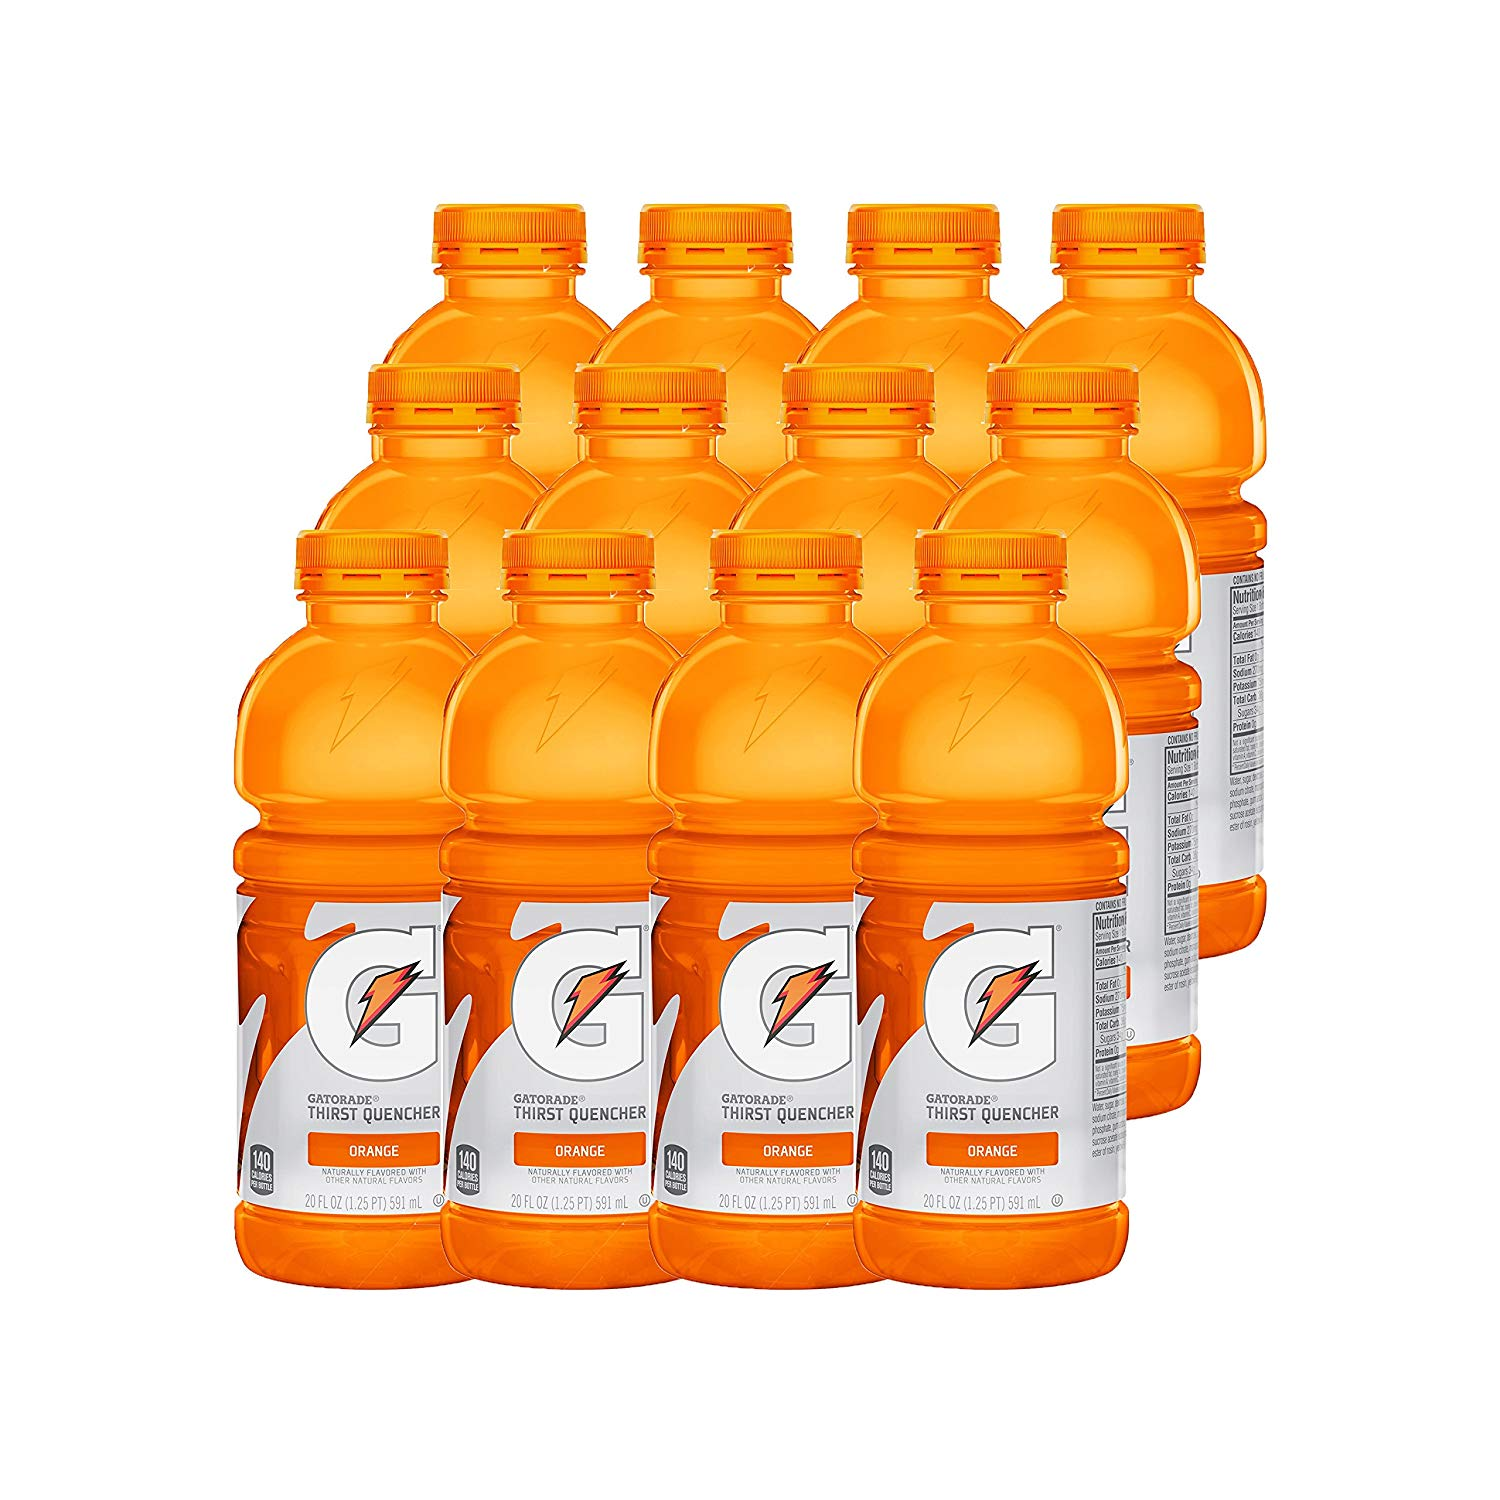 12 Bottles Gatorade Thirst Quencher only $6.35 with coupon!